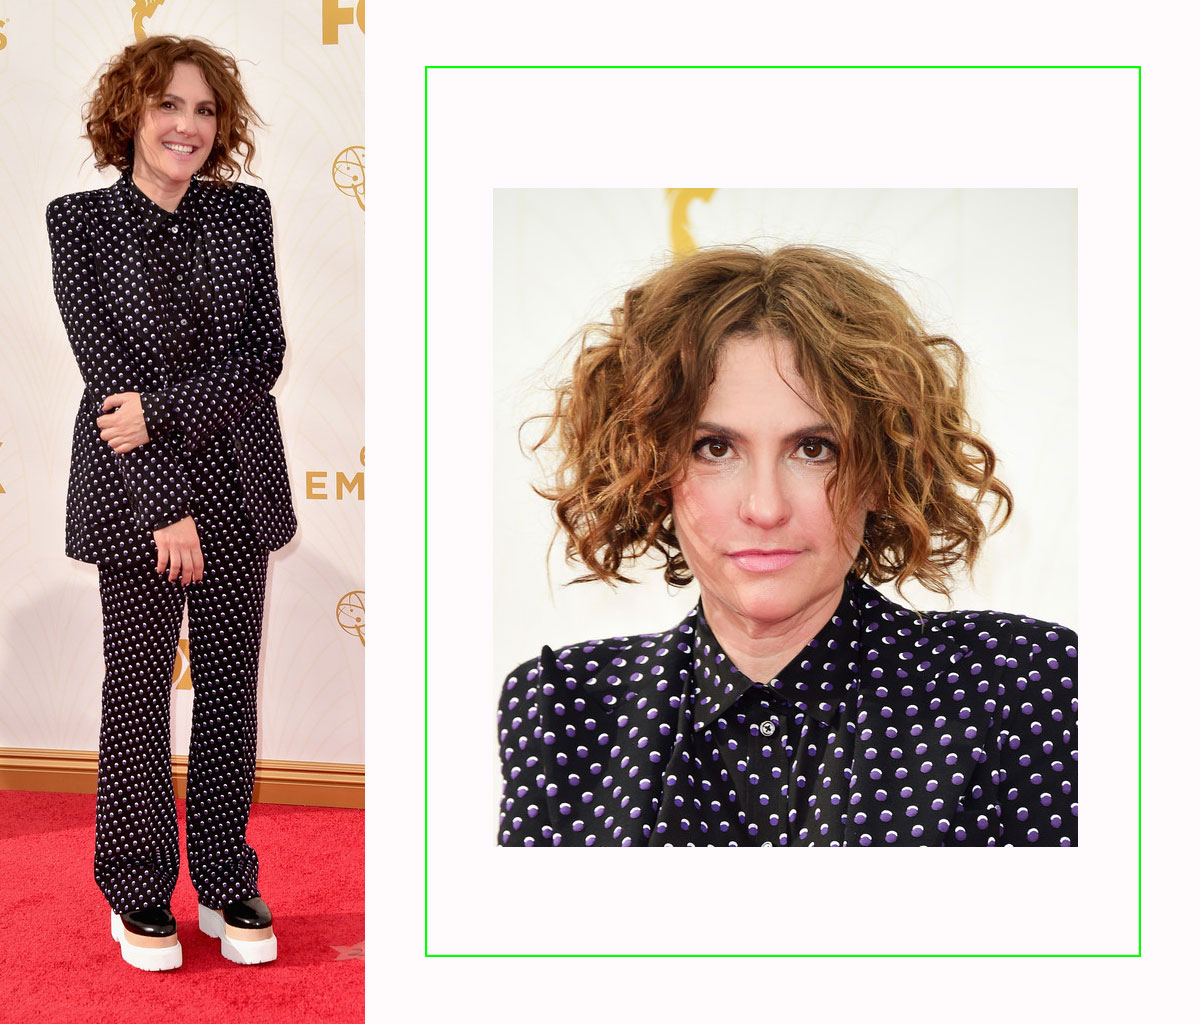 2015 Emmy Awards Red Carpet Hair Trend: The Bob